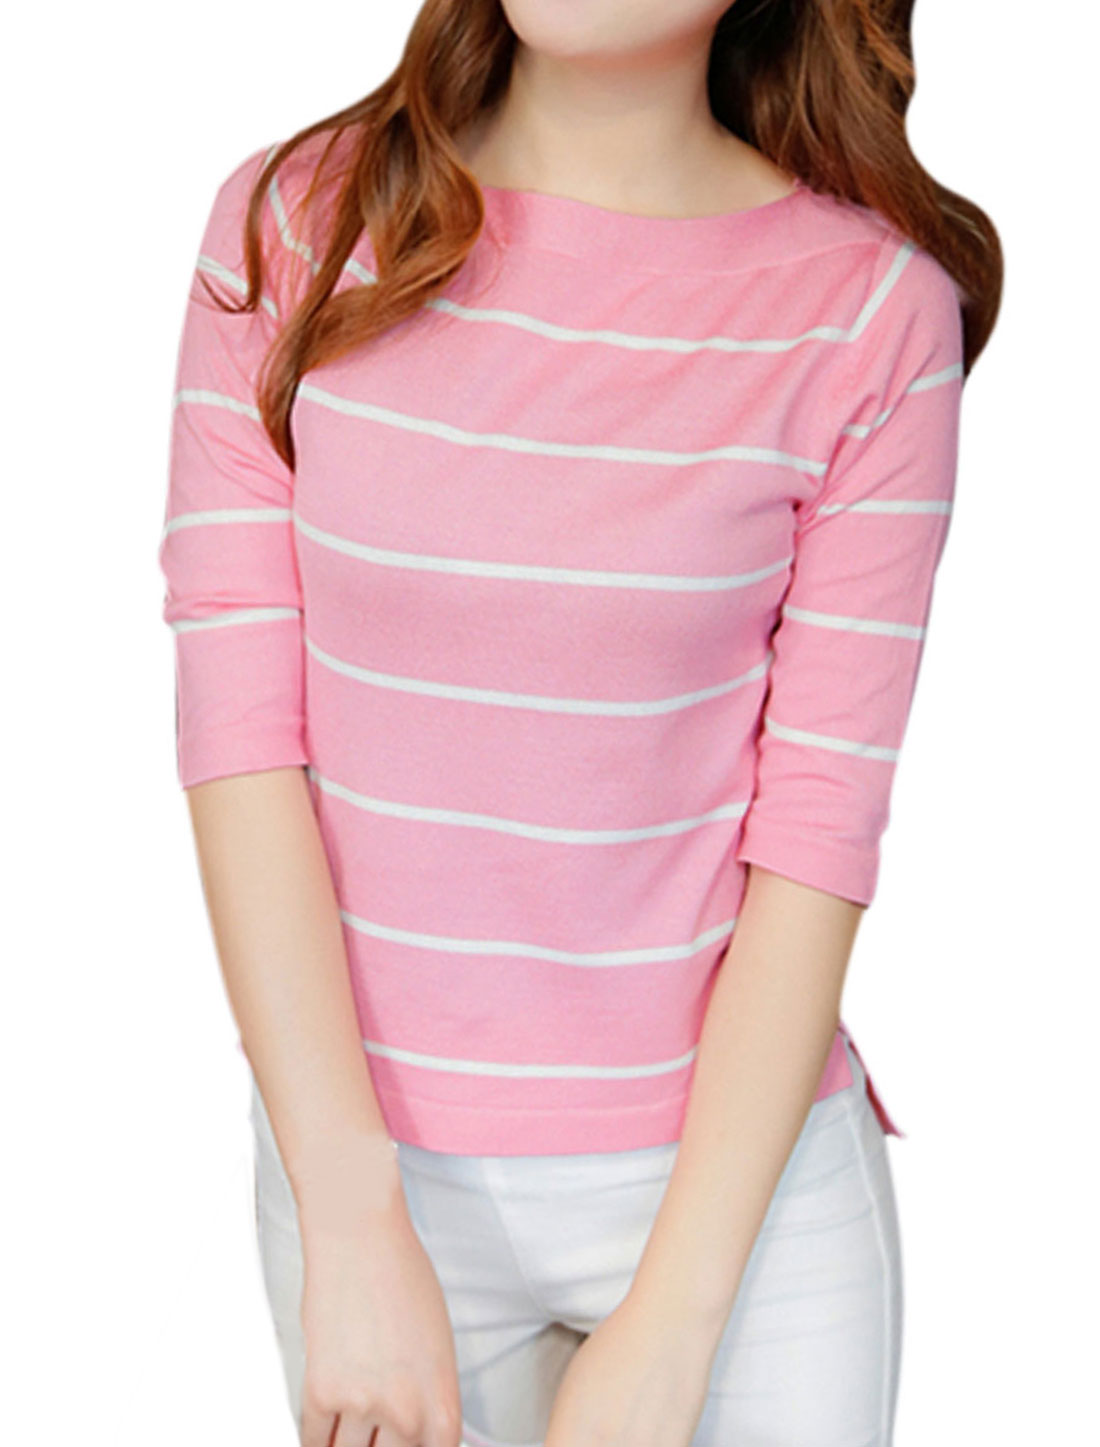 Women Boat Neck 3/4 Sleeves Slim Fit Stripe Knit Shirt Pink XS